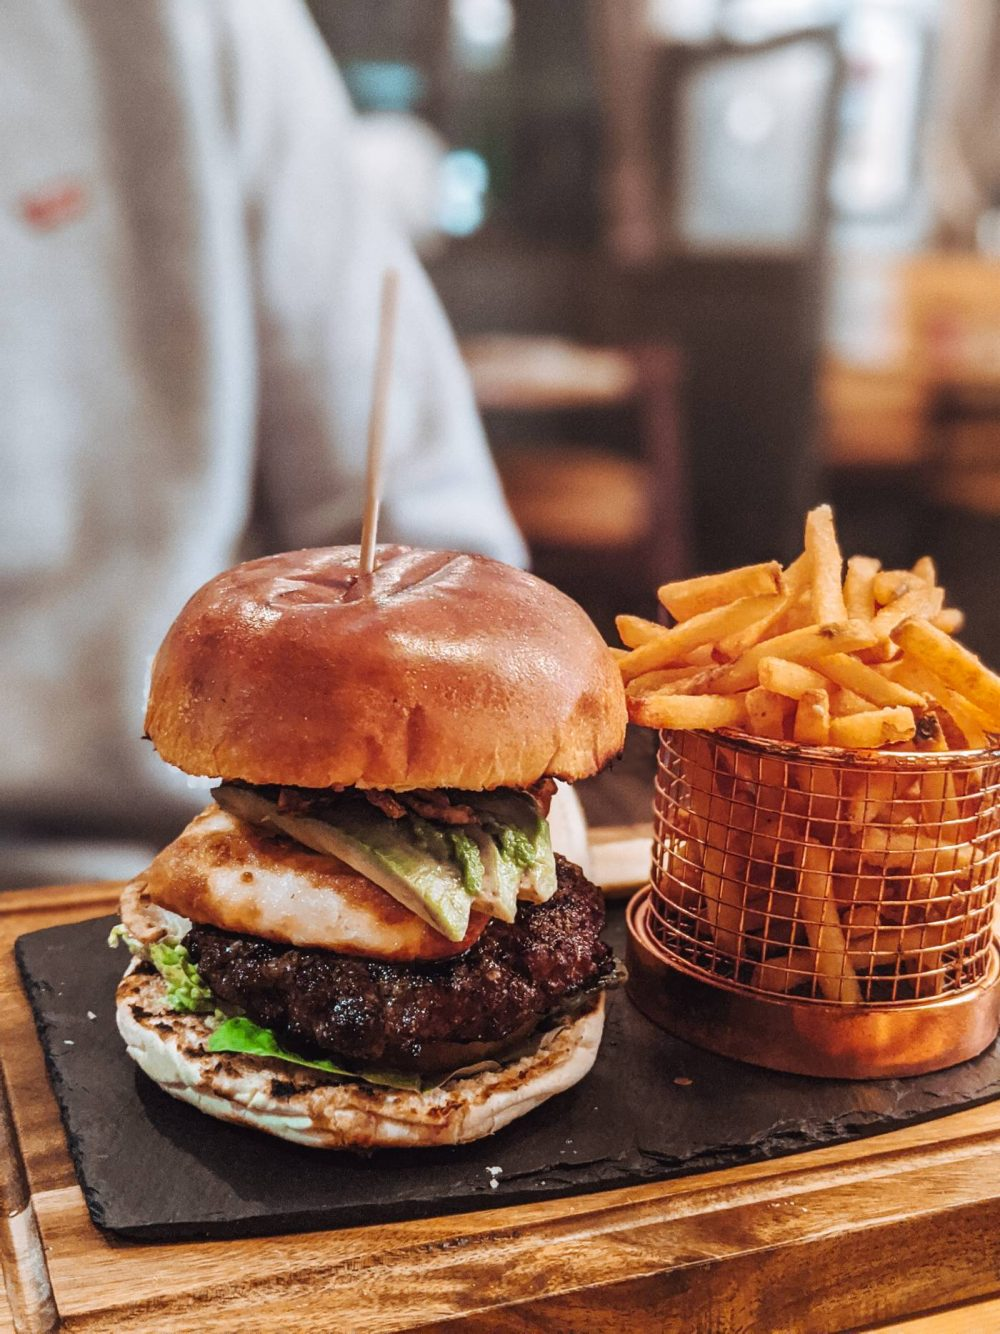 Burger at The Wheatsheaf, Bow Brickhill - Eat Out to Help out in Milton Keynes.